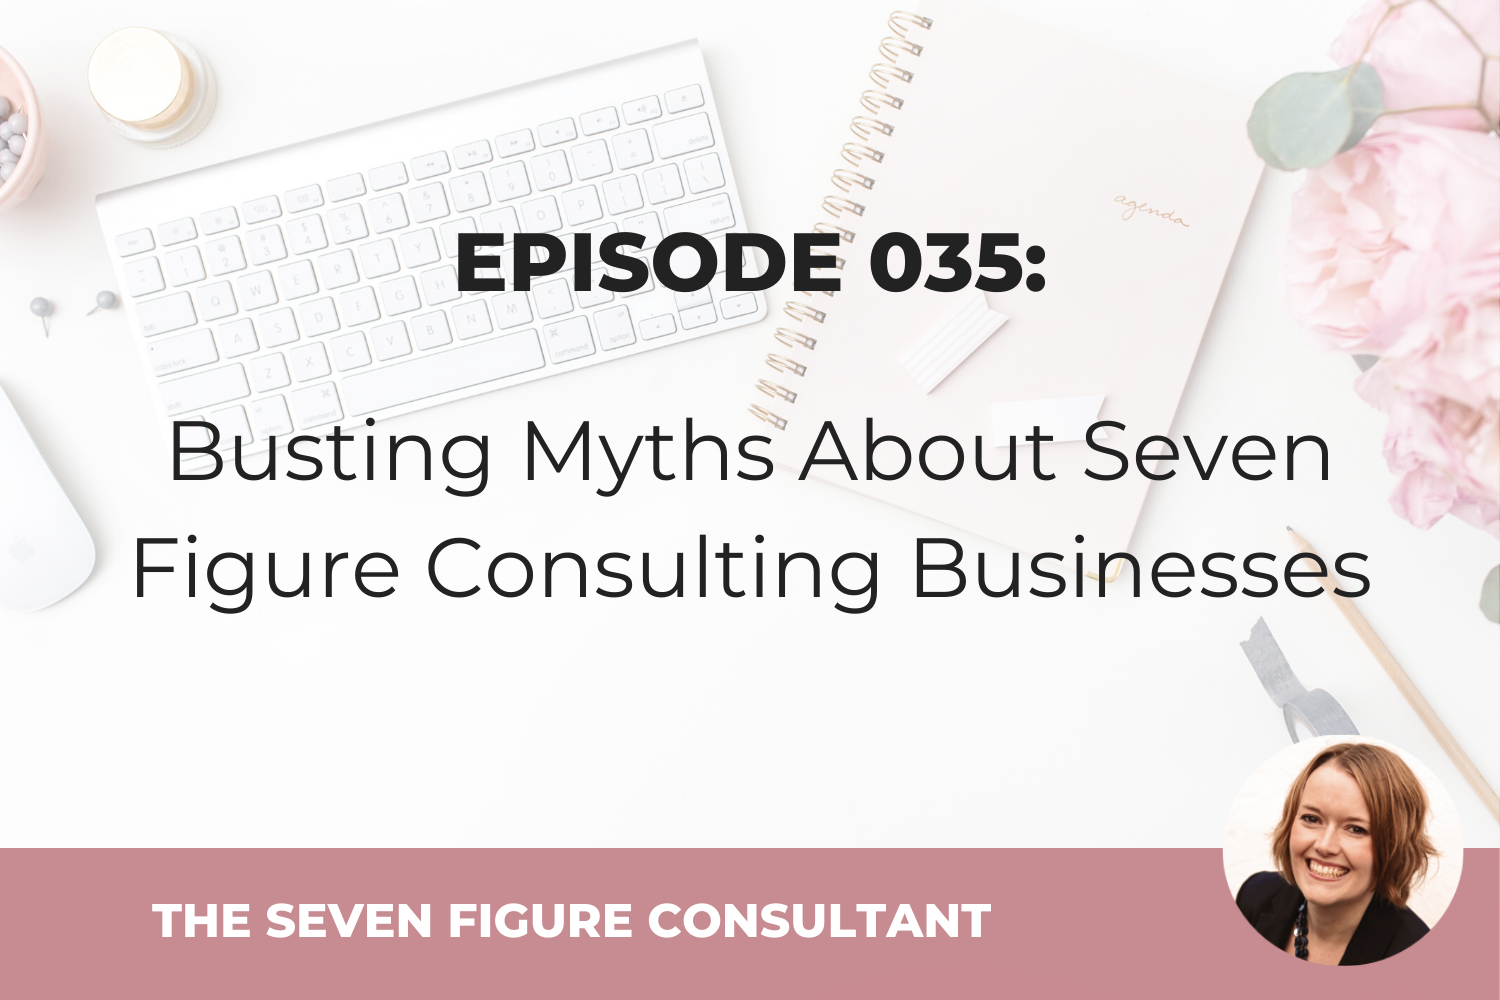 Episode 035: Busting Myths About Seven Figure Consulting Businesses